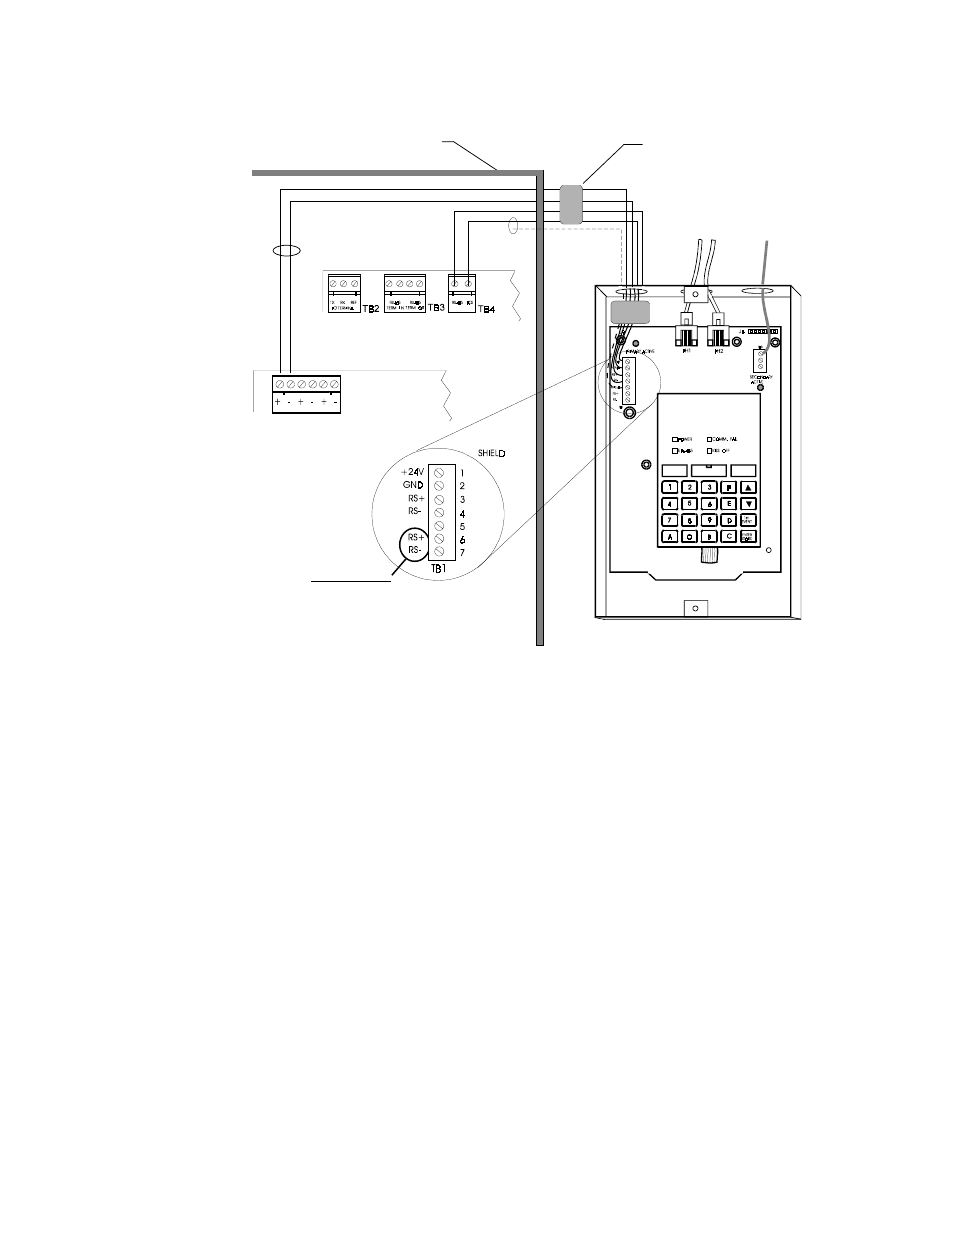 Adt Security Services Udact User Manual Page 60 68 Wiring Diagram